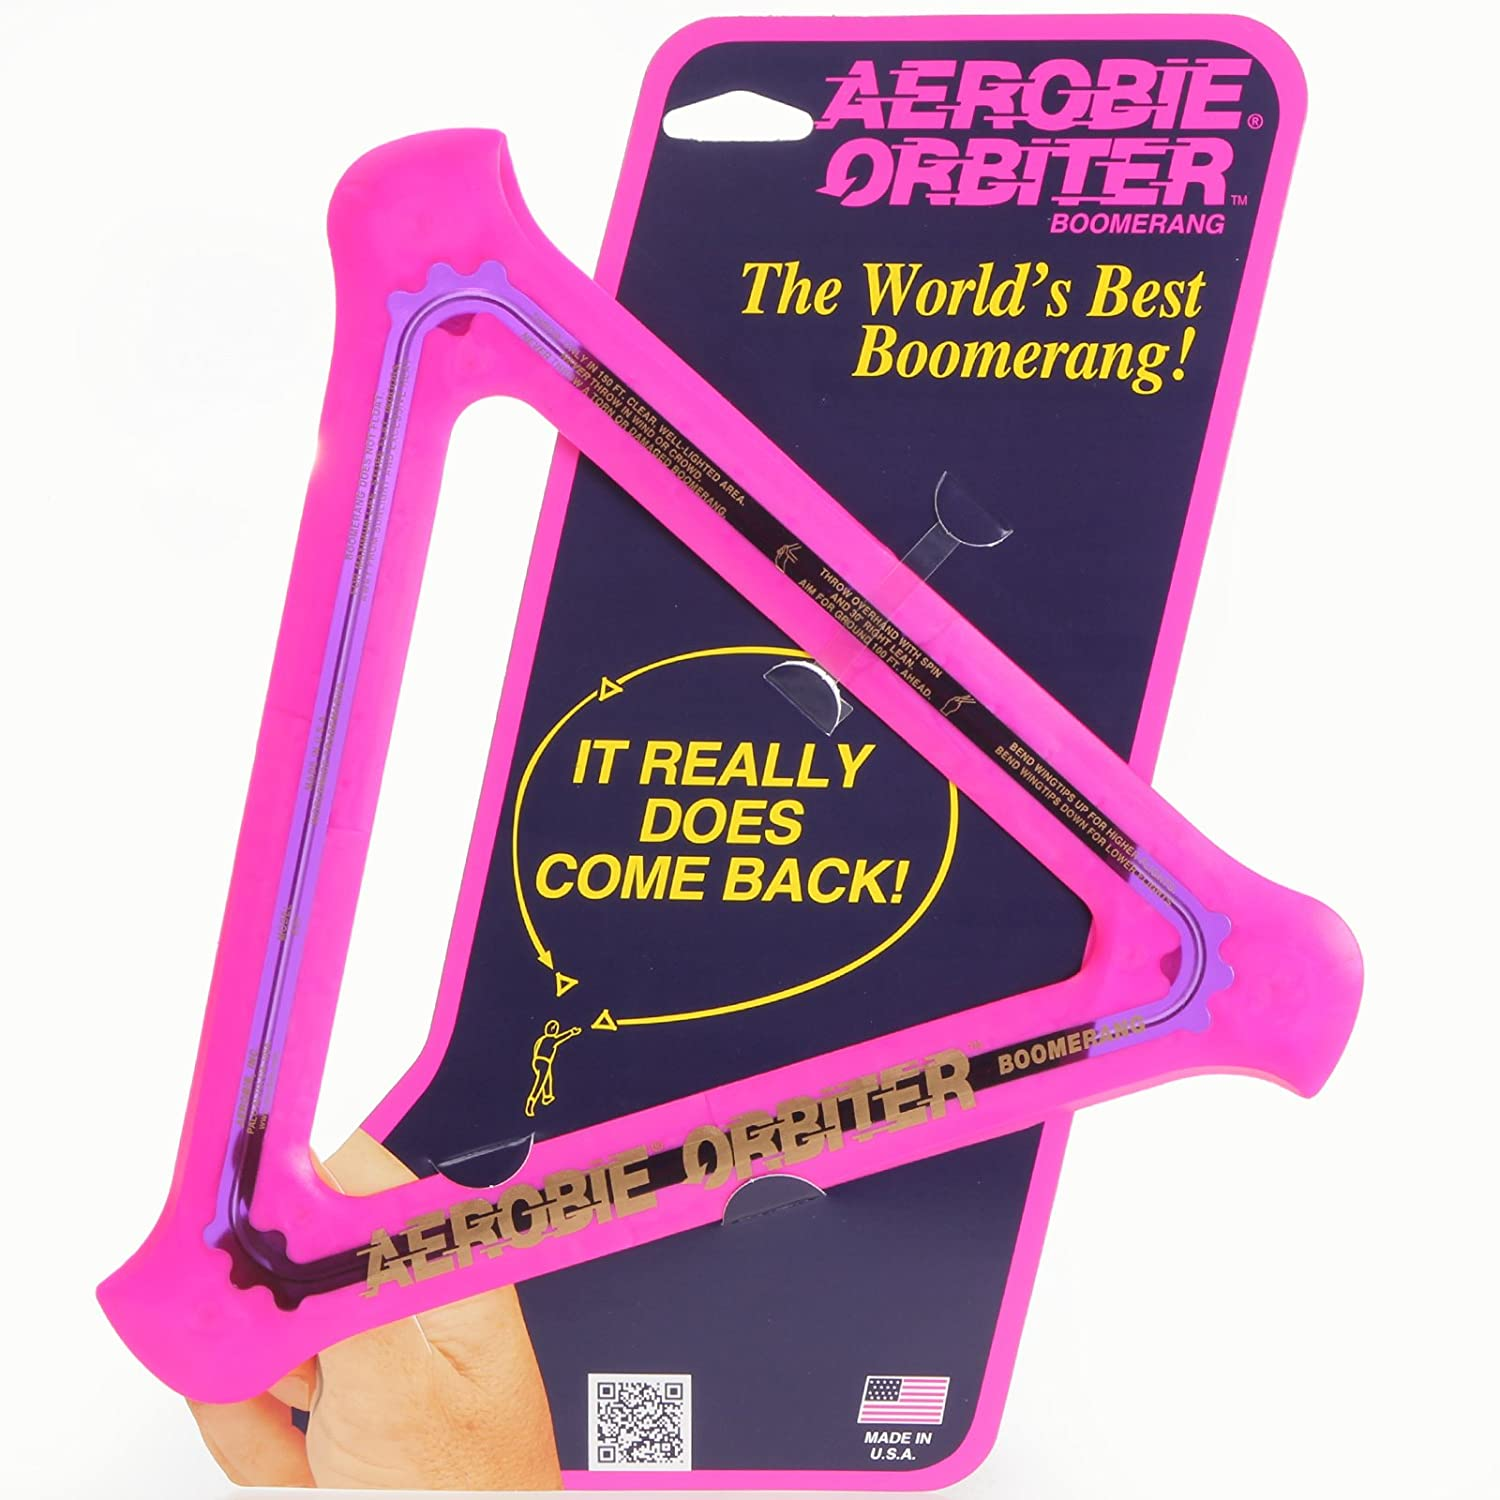 Aerobie Orbitor Boomerang The Worlds Best Boomerang (It Really Does Come Back)